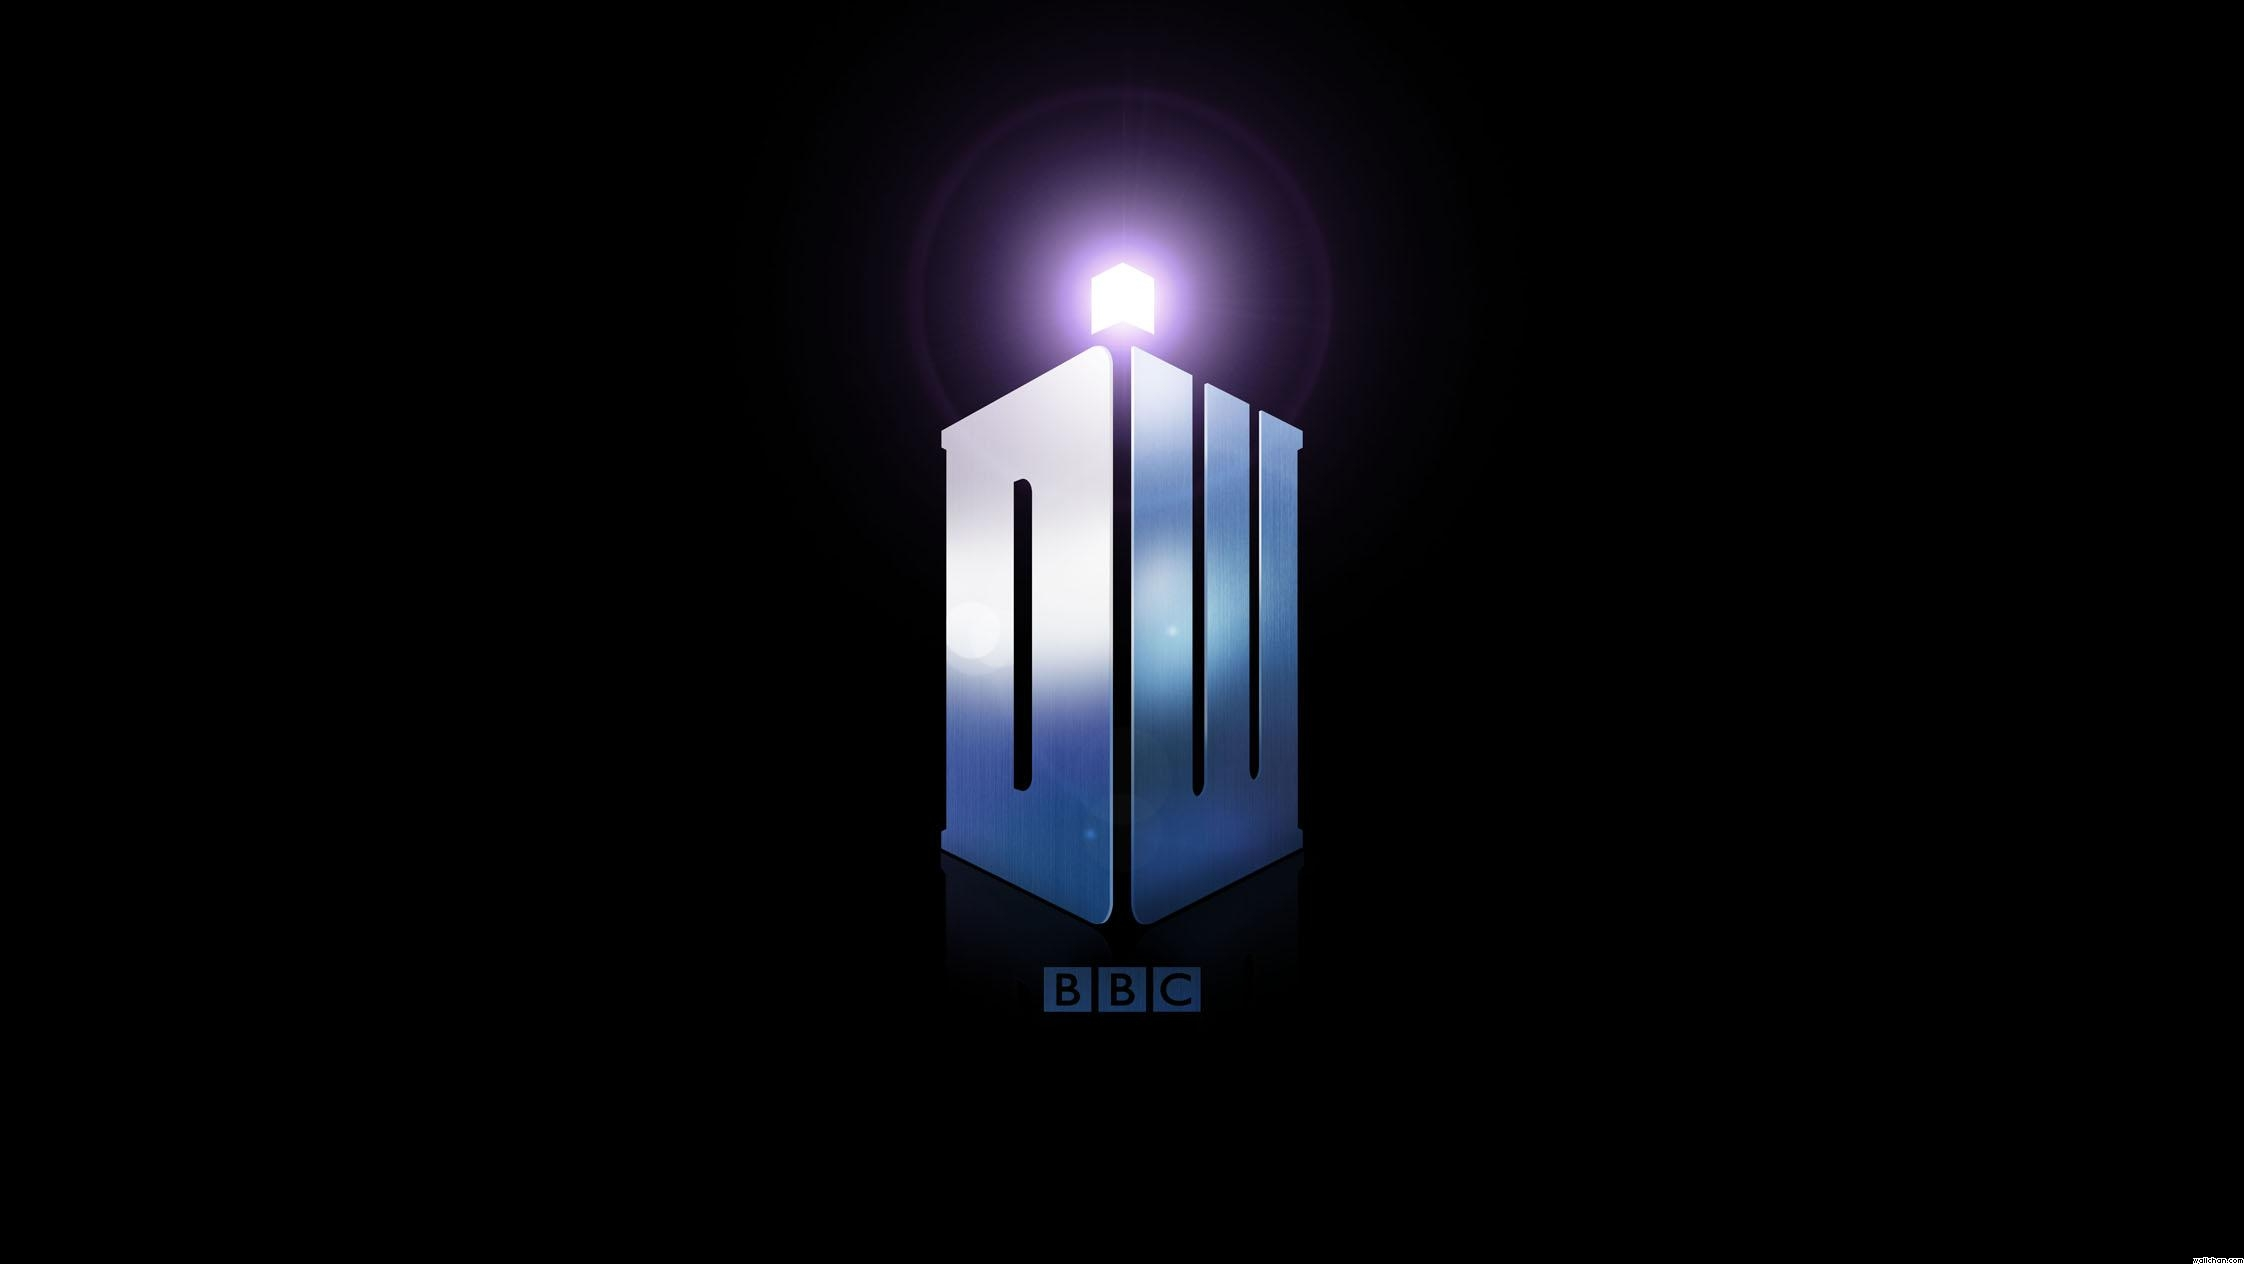 New Doctor Who 'Series 8' Teaser